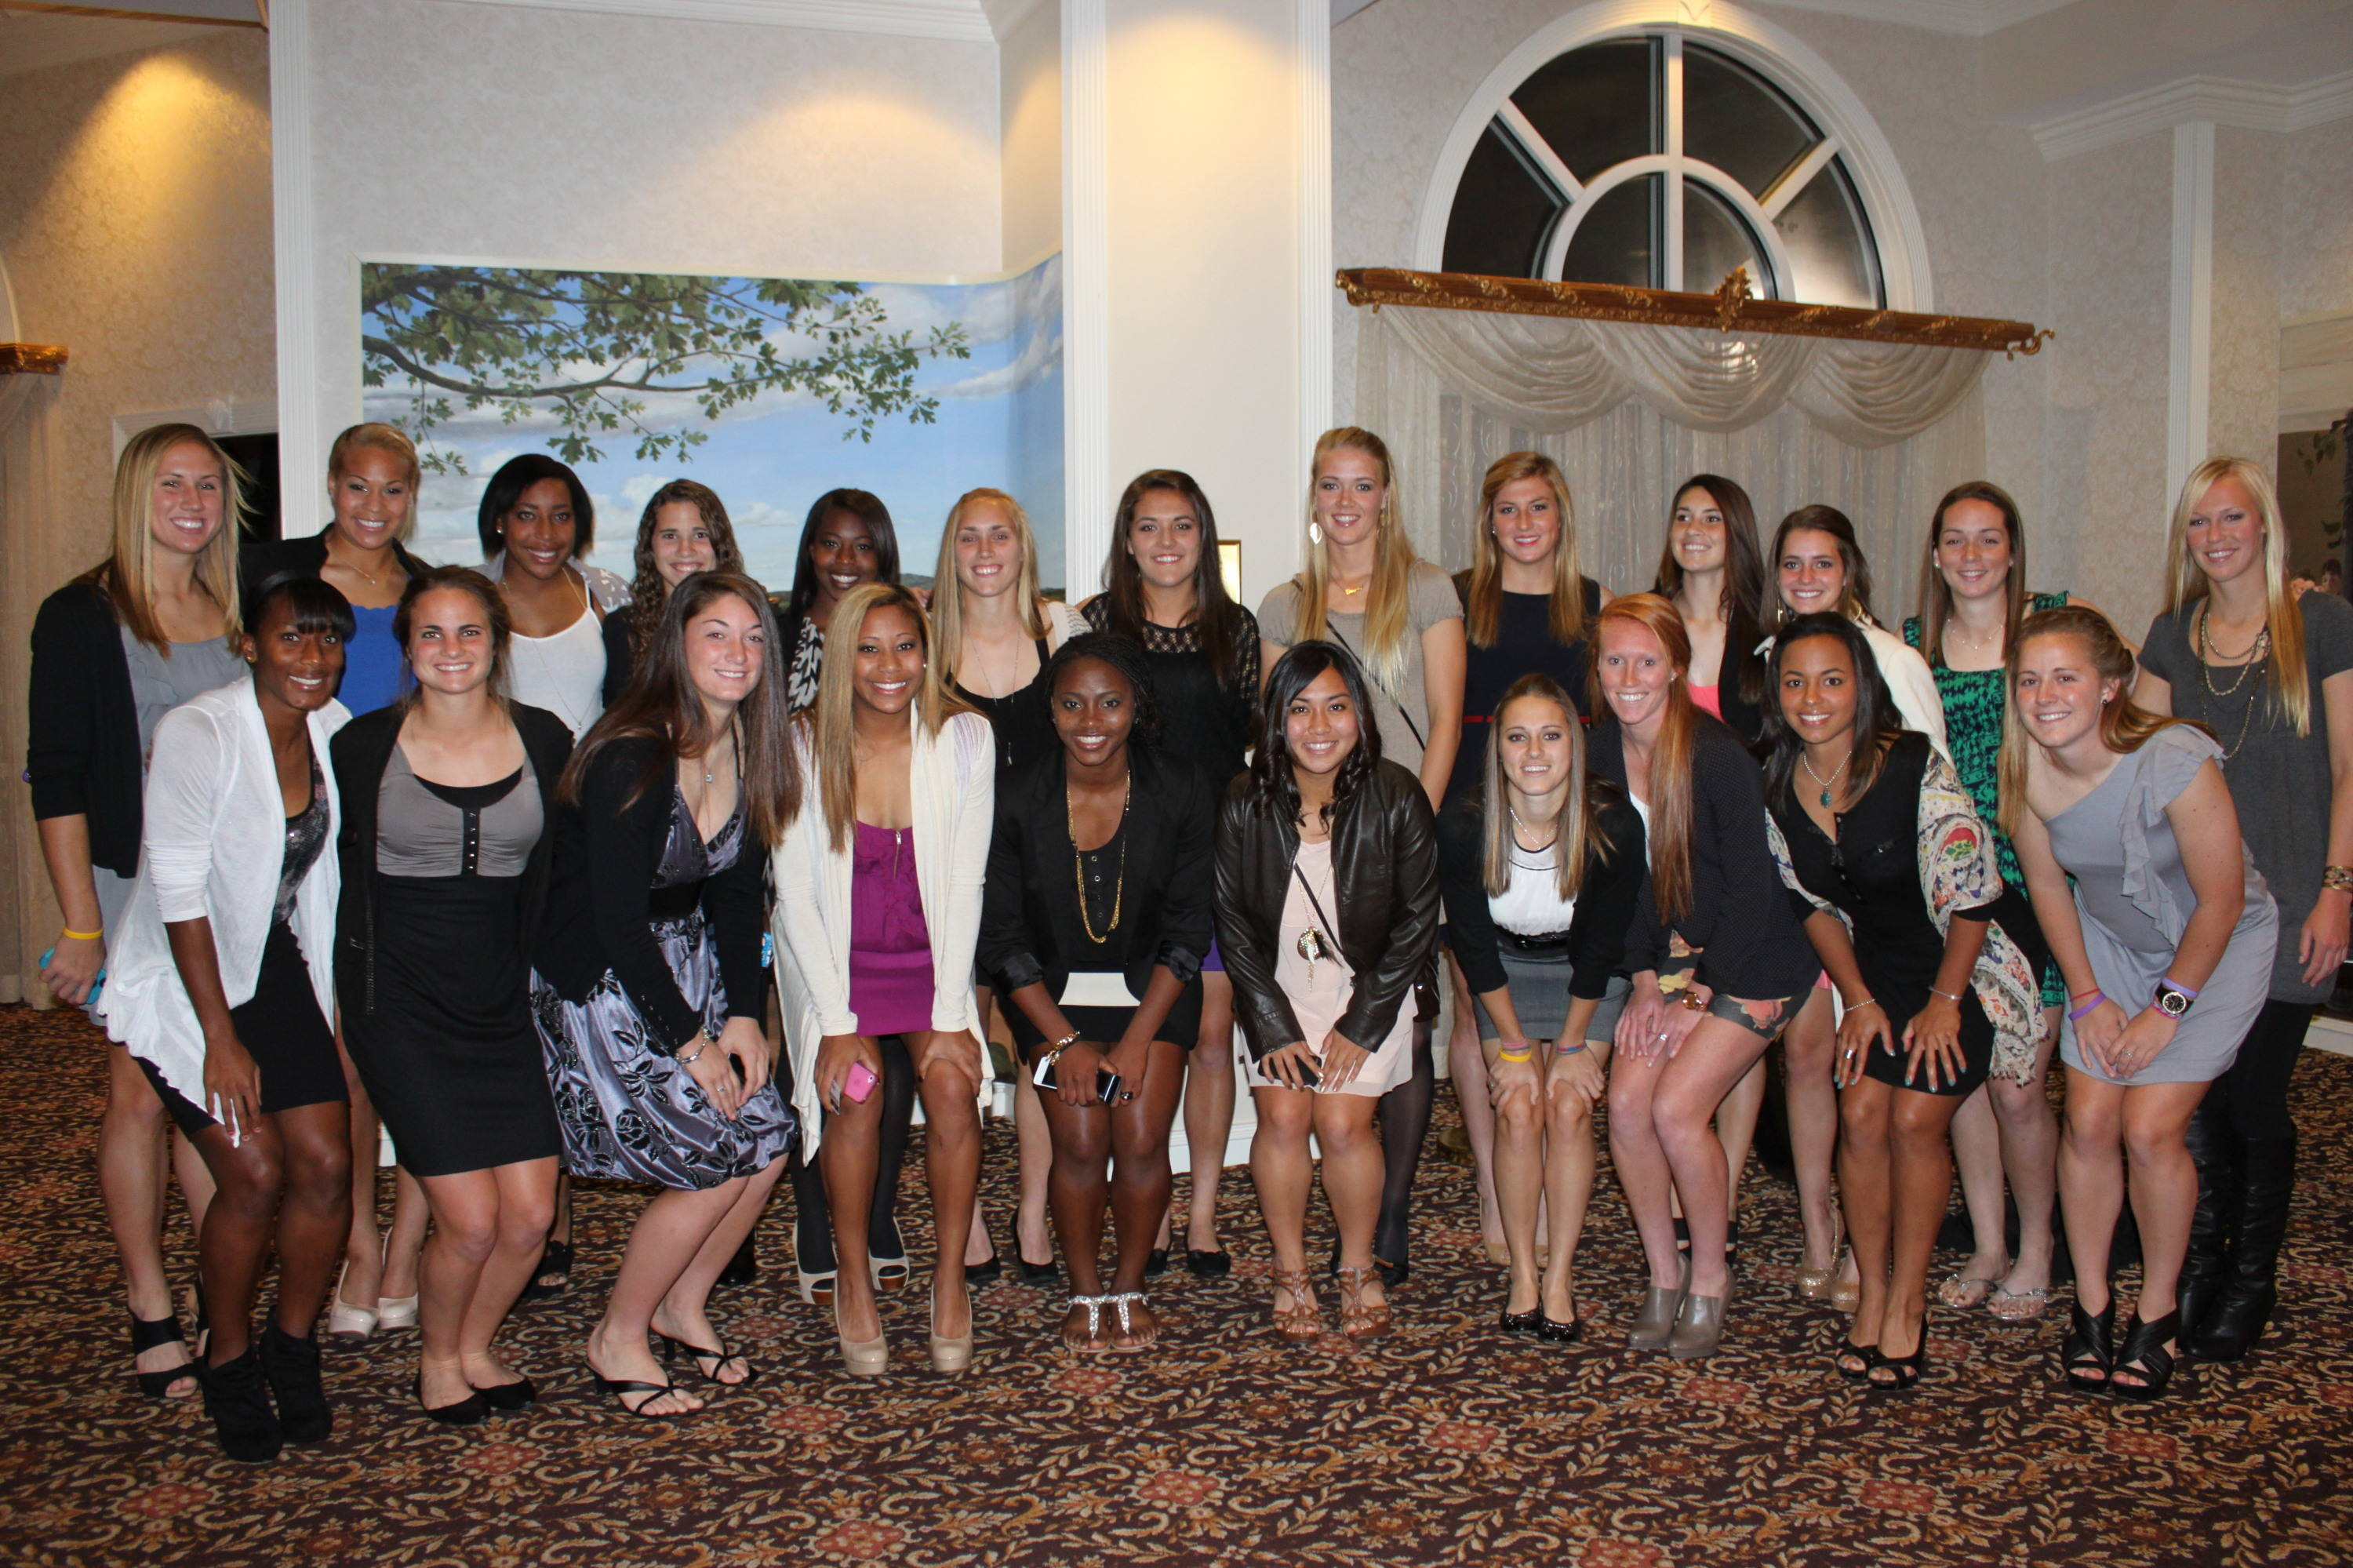 The Seminoles pose at the hotel prior to the College Cup banquet.